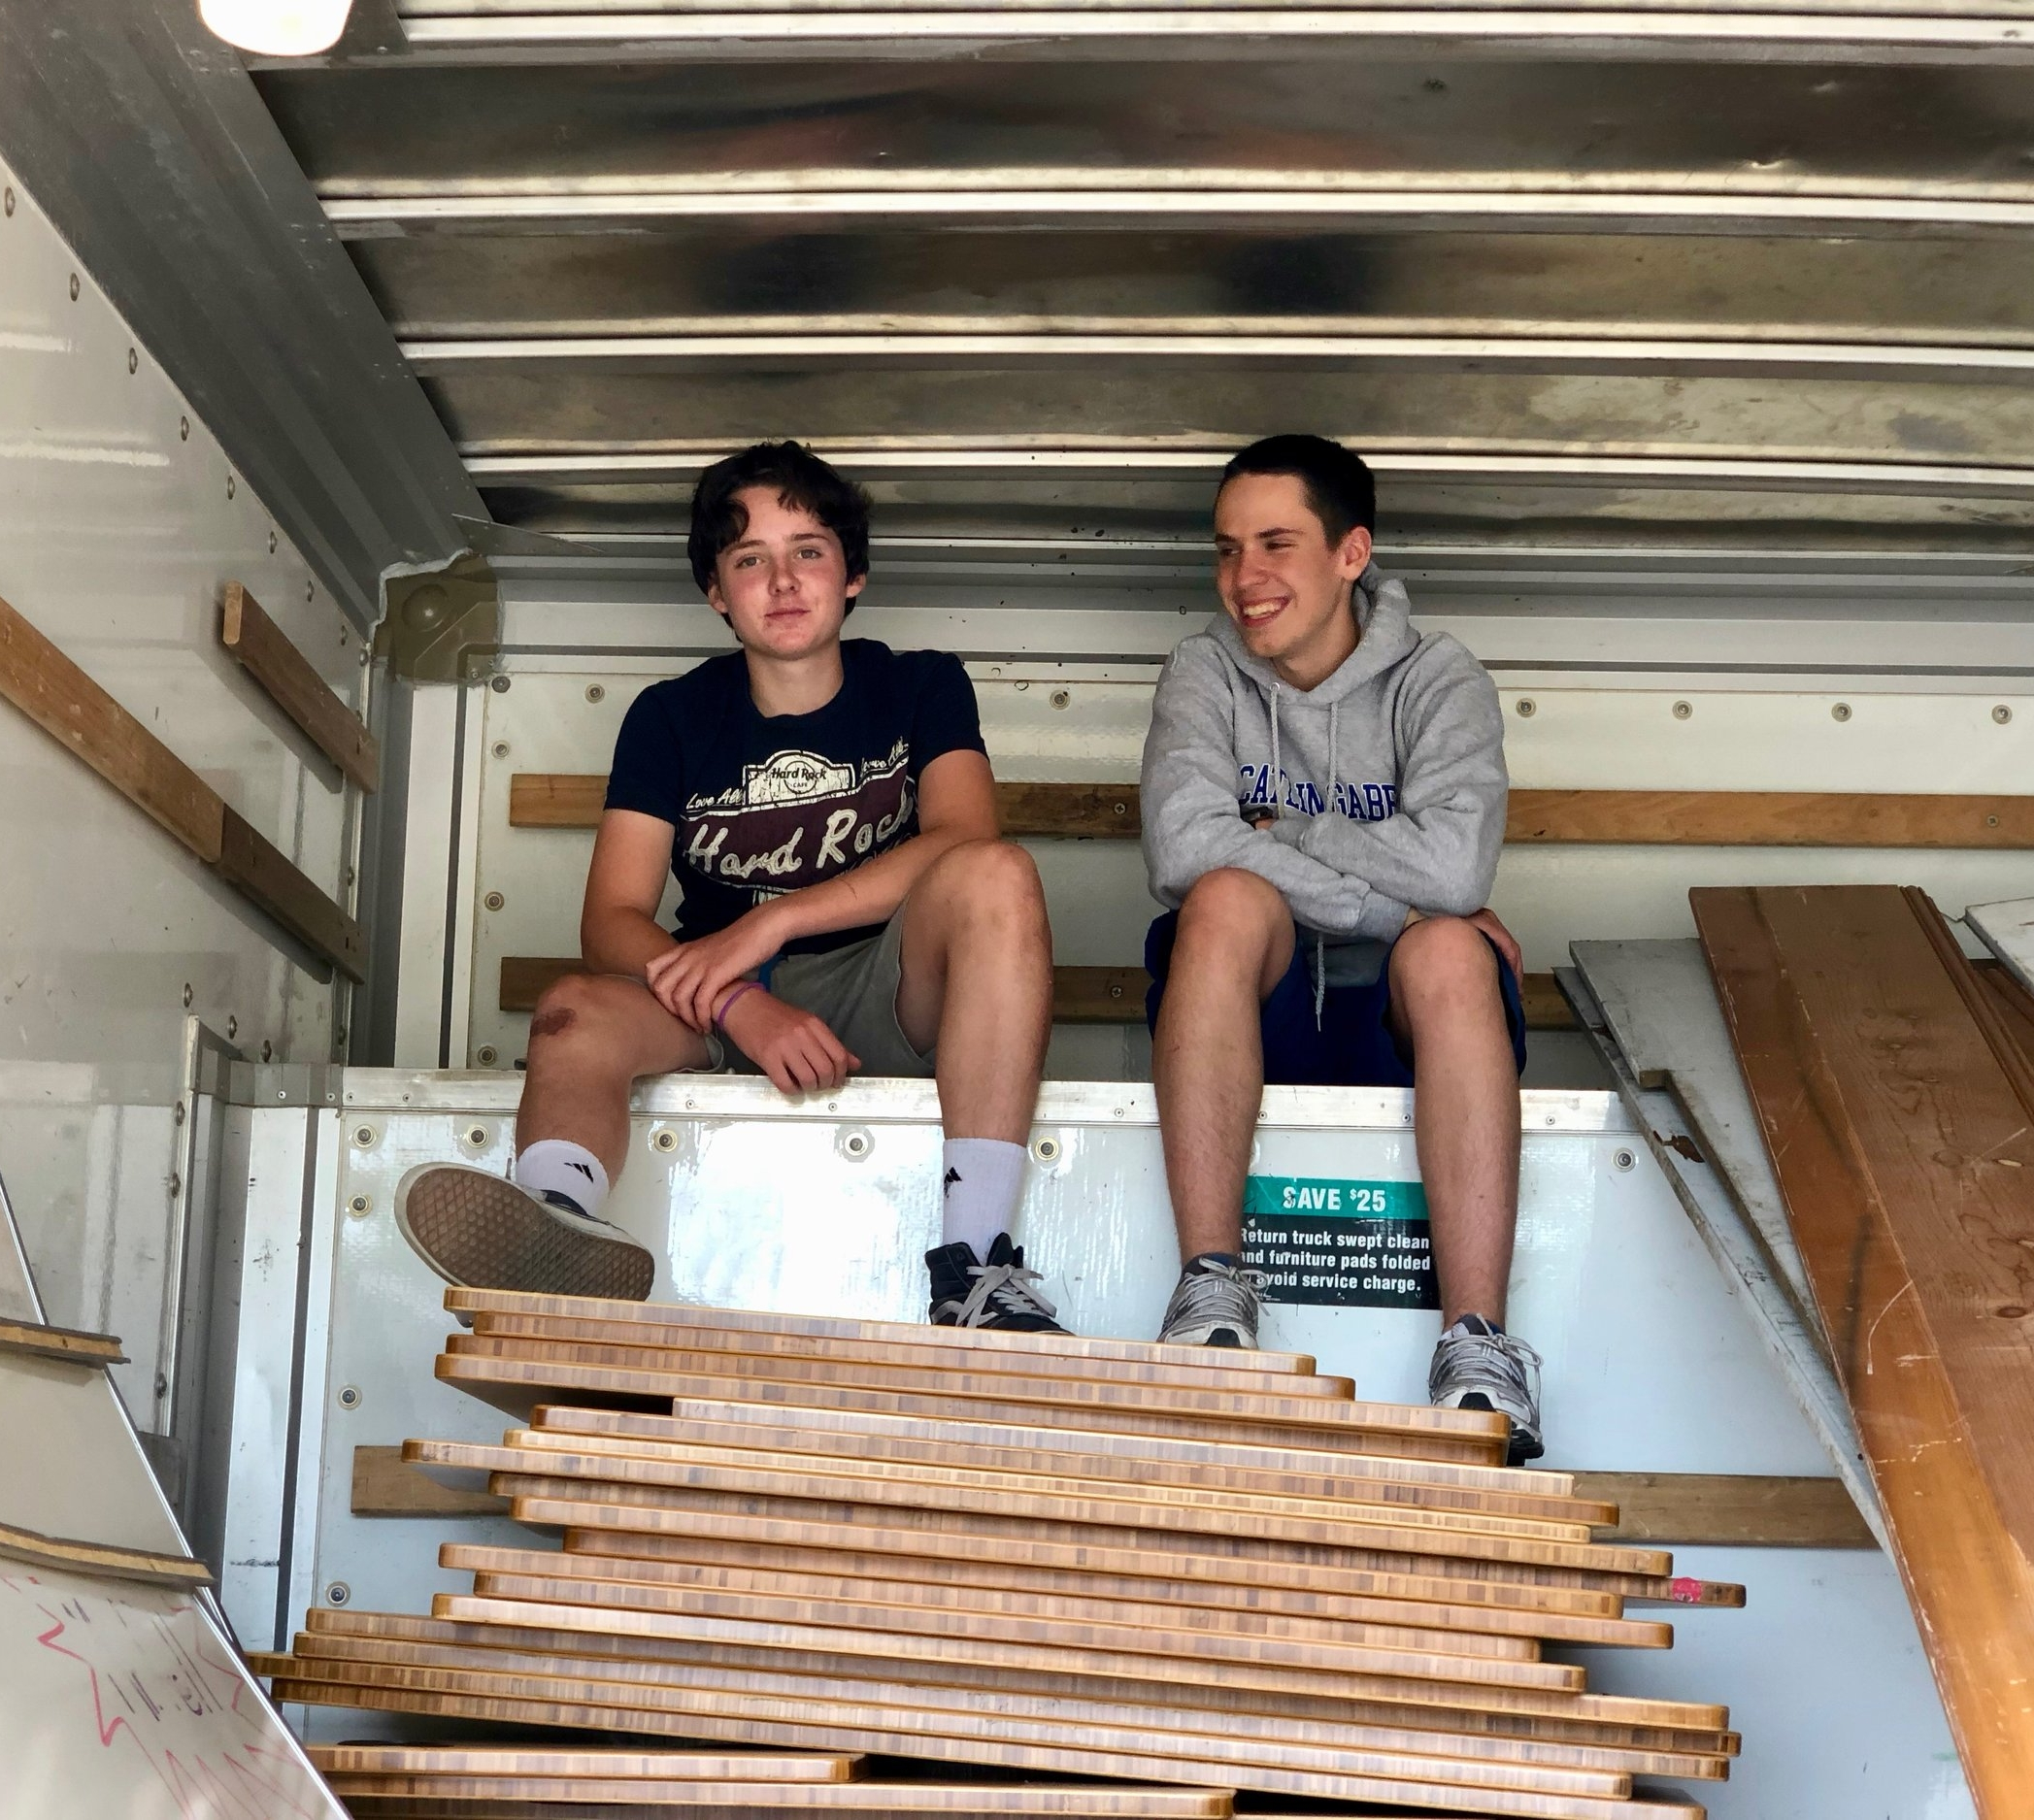 Shine Summer Internship - The 2018 Shine Summer Interns worked at Agape Village to produce and install JuiceBoxes in off-grid tiny houses, perform R&D for JuiceBox 3.0, and develop additional community partnerships including with Autodesk and Free Geek.